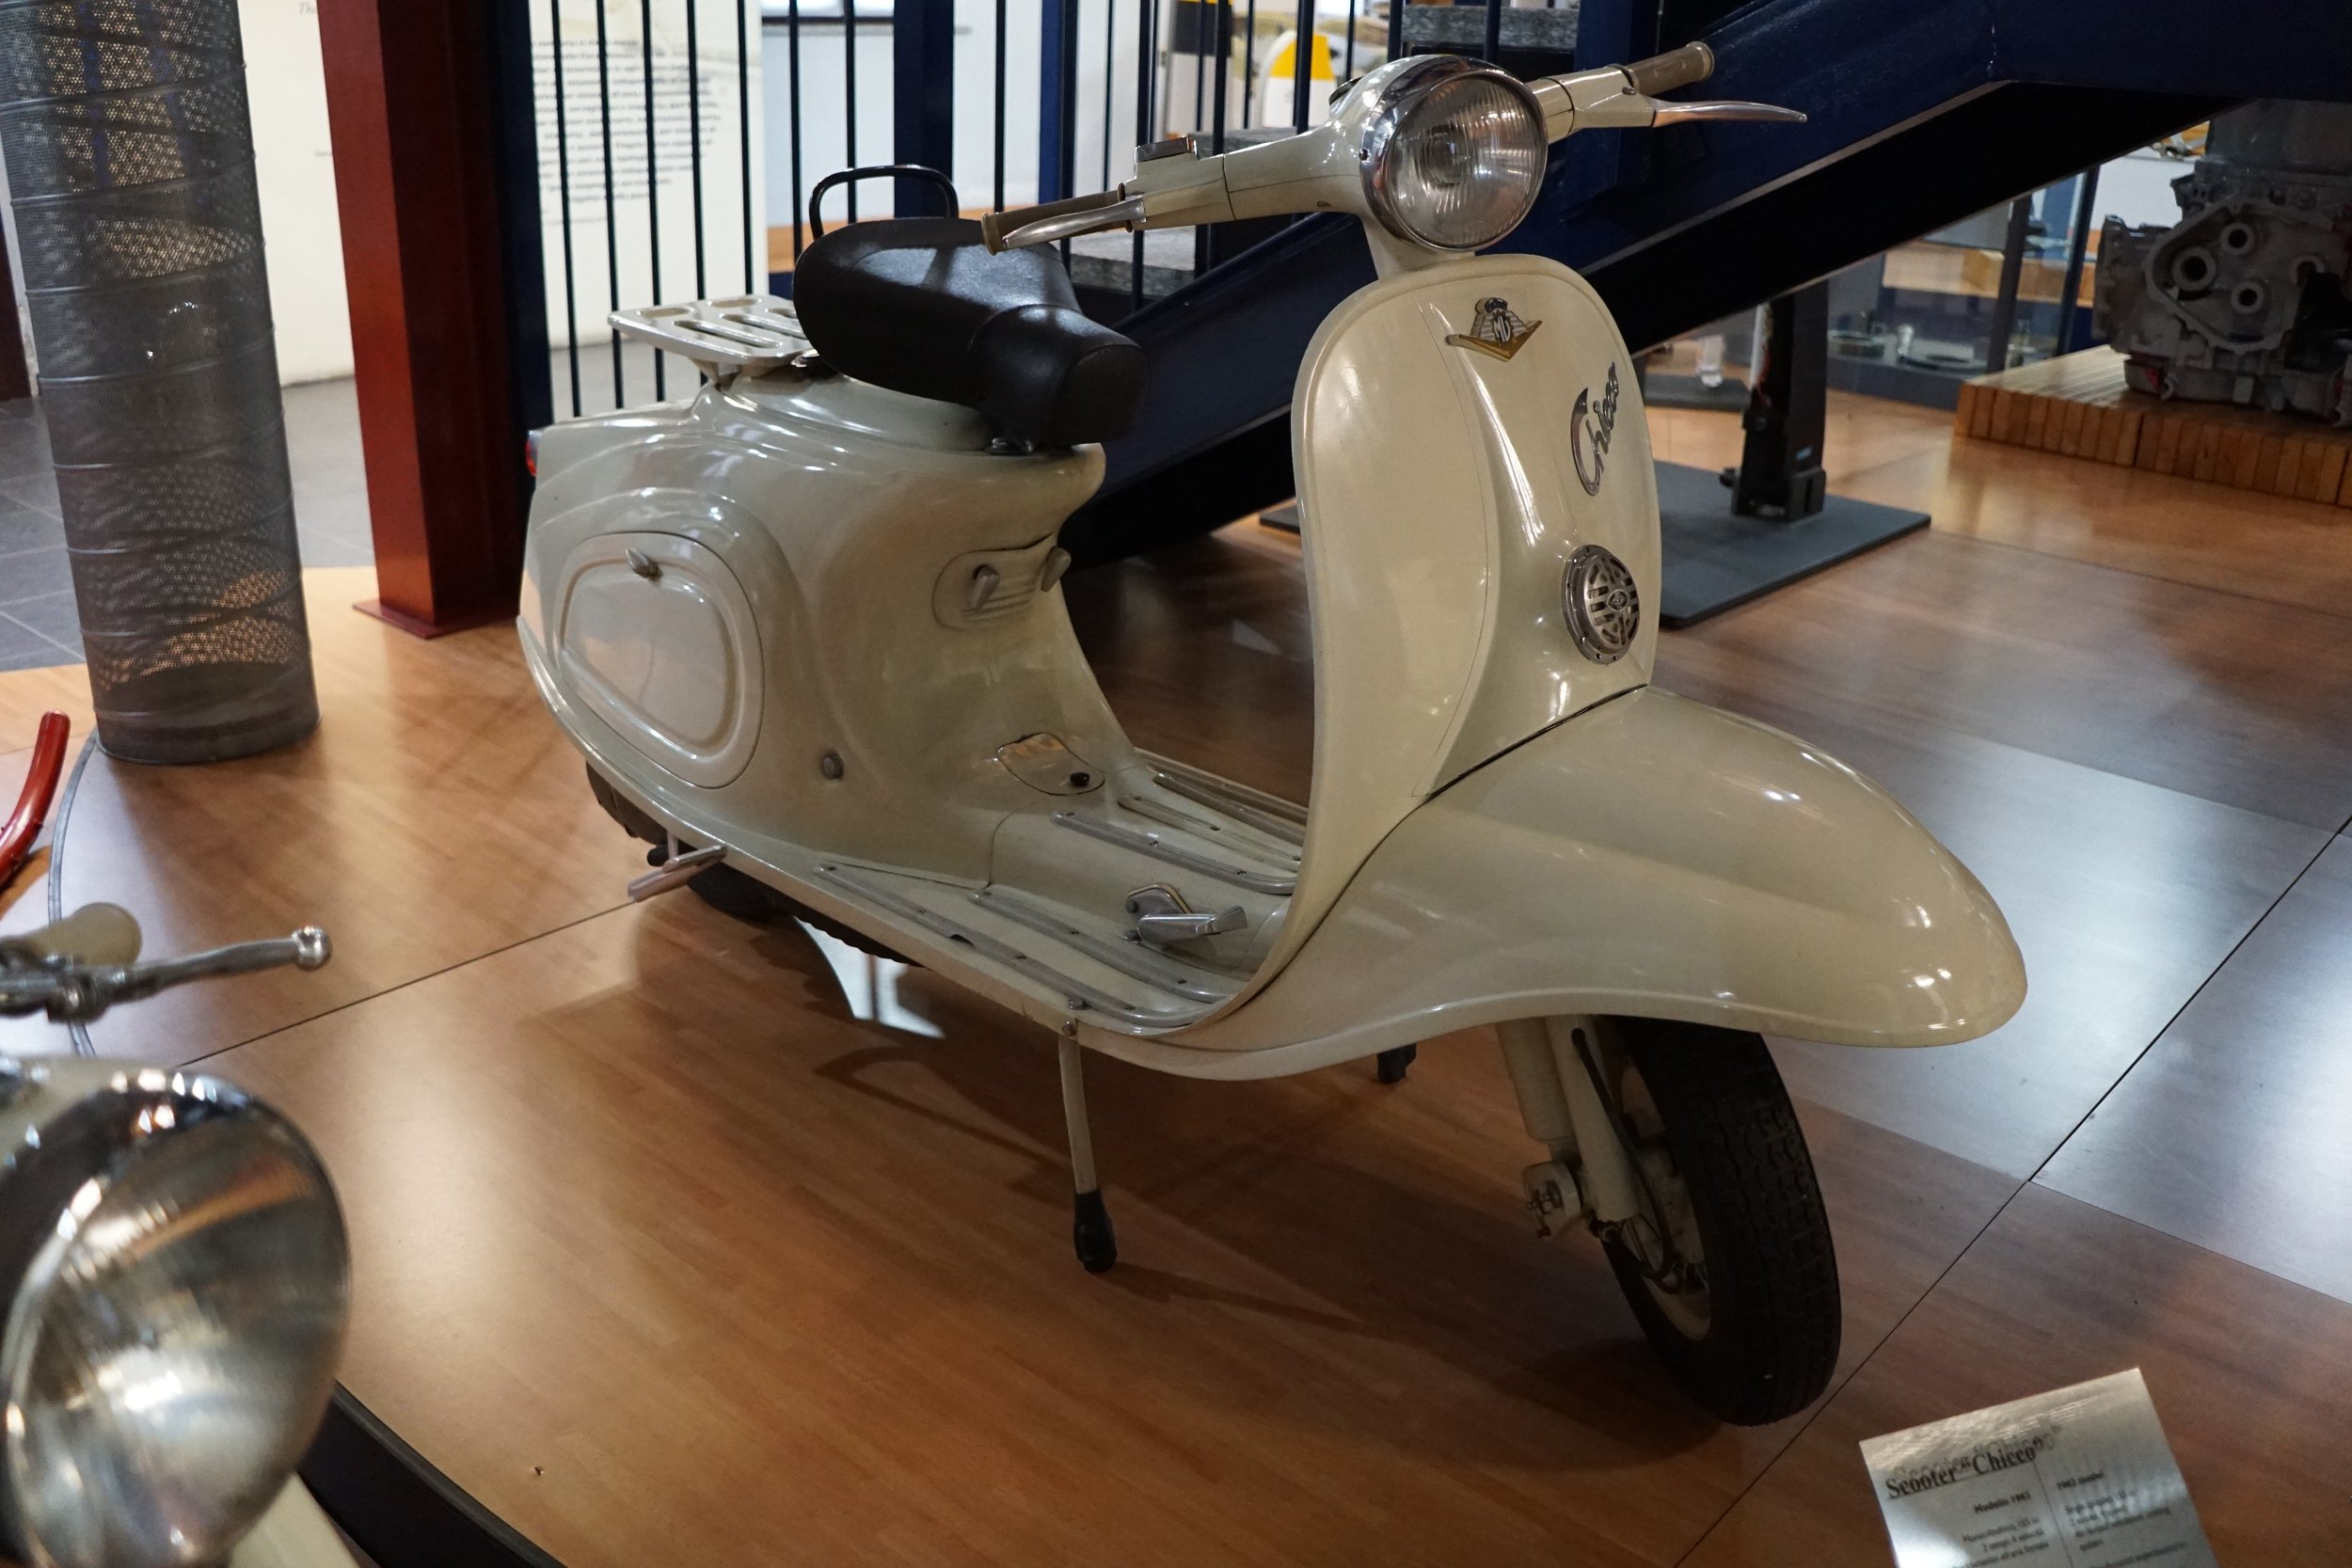 '62 Chicco scooter – This is a 1962 developmental prototype for a model that was fairly successful, selling 3,000 units from 1960-'63. It has a fan-cooled 155cc 2-stroke motor with 4 speed 'box.